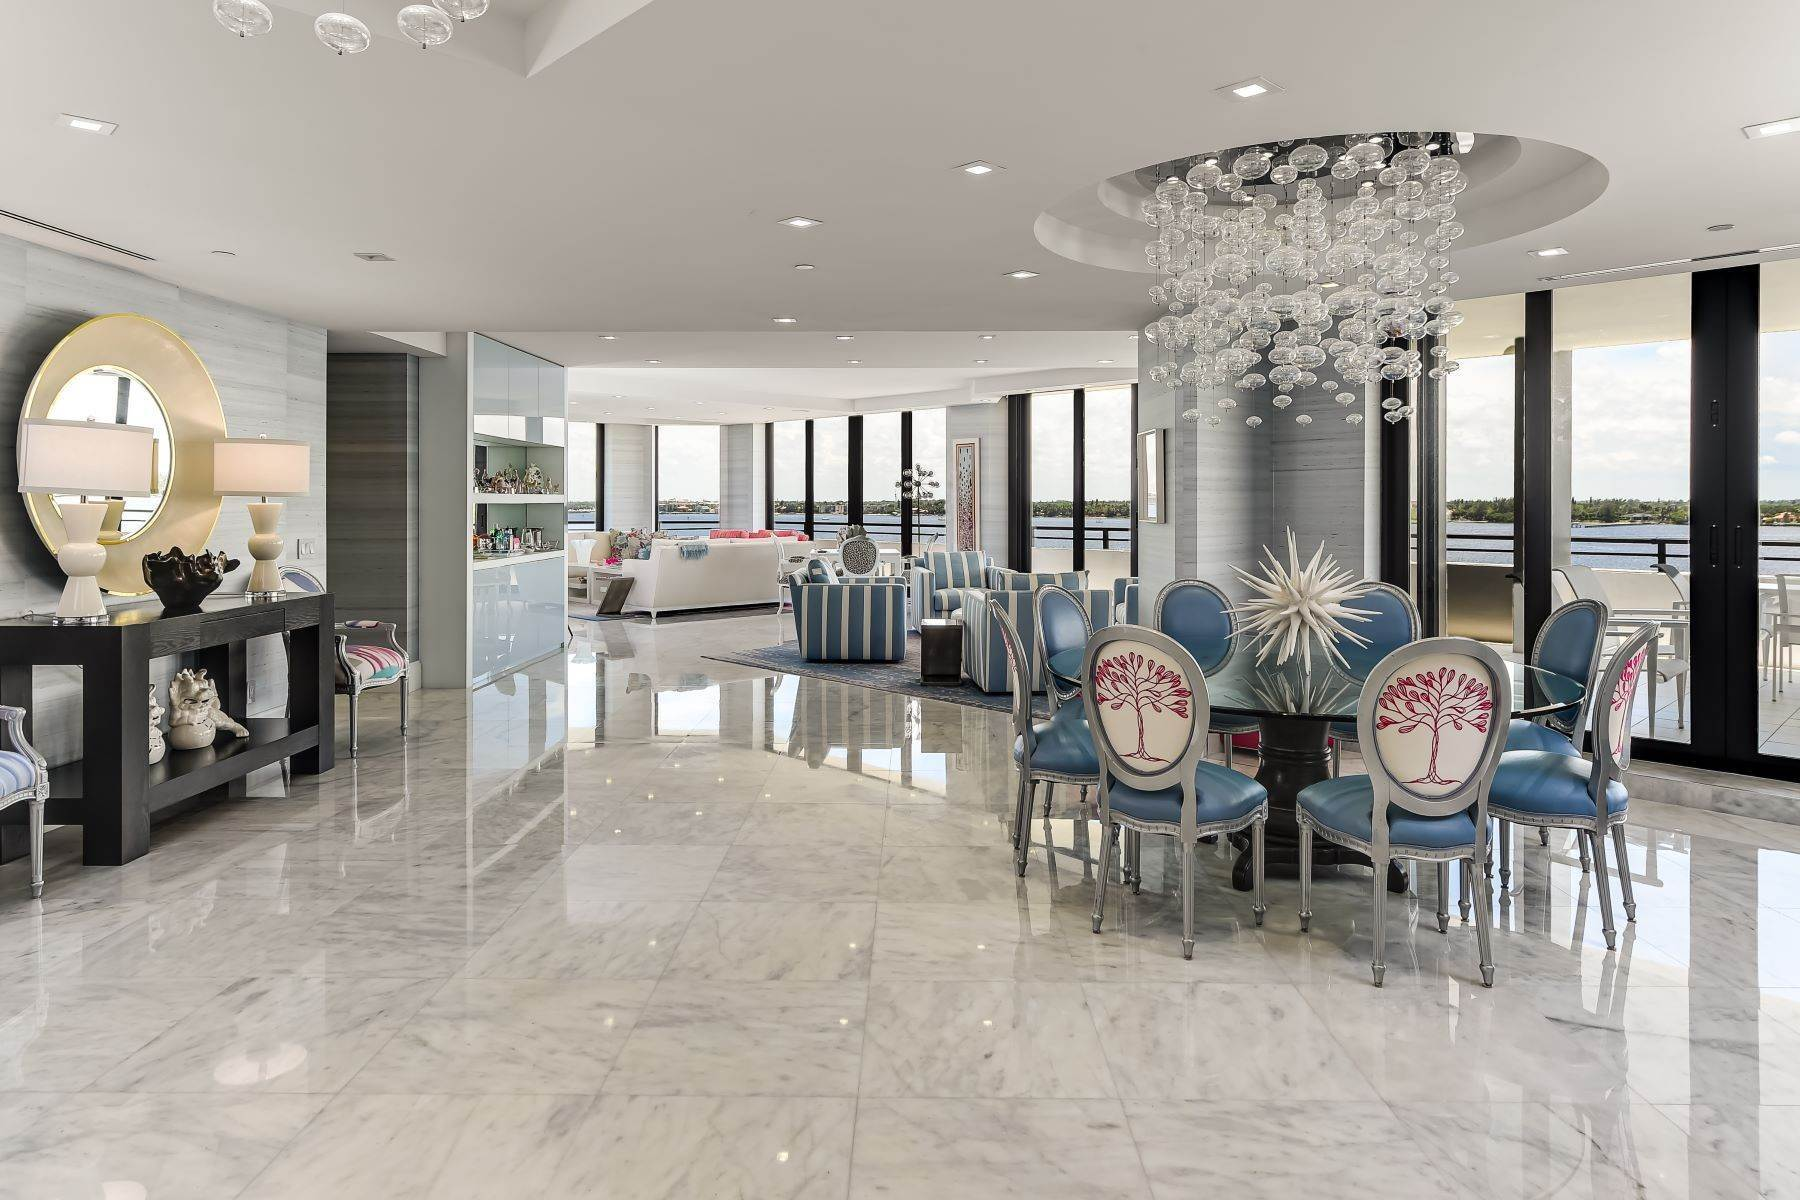 Condominiums for Sale at Glamorous Trophy Penthouse 3100 S Ocean Blvd, PH 607S, C15 Palm Beach, Florida 33480 United States